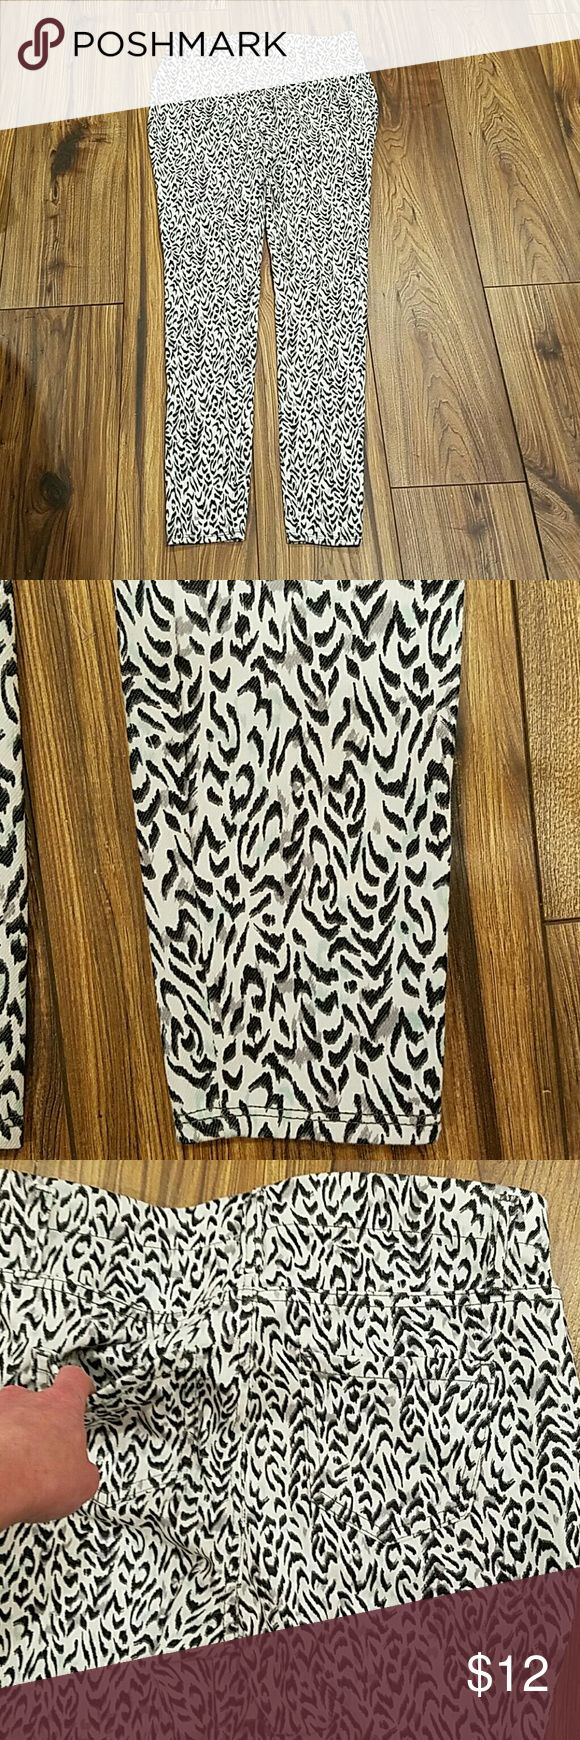 NWOTWhite zebra strip w blue/gray womens jeggings I never wore these has 2 pockets on the back as well as belt loops if u wanna wear a belt 30% OFF BUNDLES 2 ITEMS OR MORE AND DO A 3 ITEM BUNDLE CHOOSE $4 ITEM FREE MAKE ME A REASONABLE OFFER CHOOSE FREE $4 ITEM WITH ANY BUNDLE PURCHASE Other